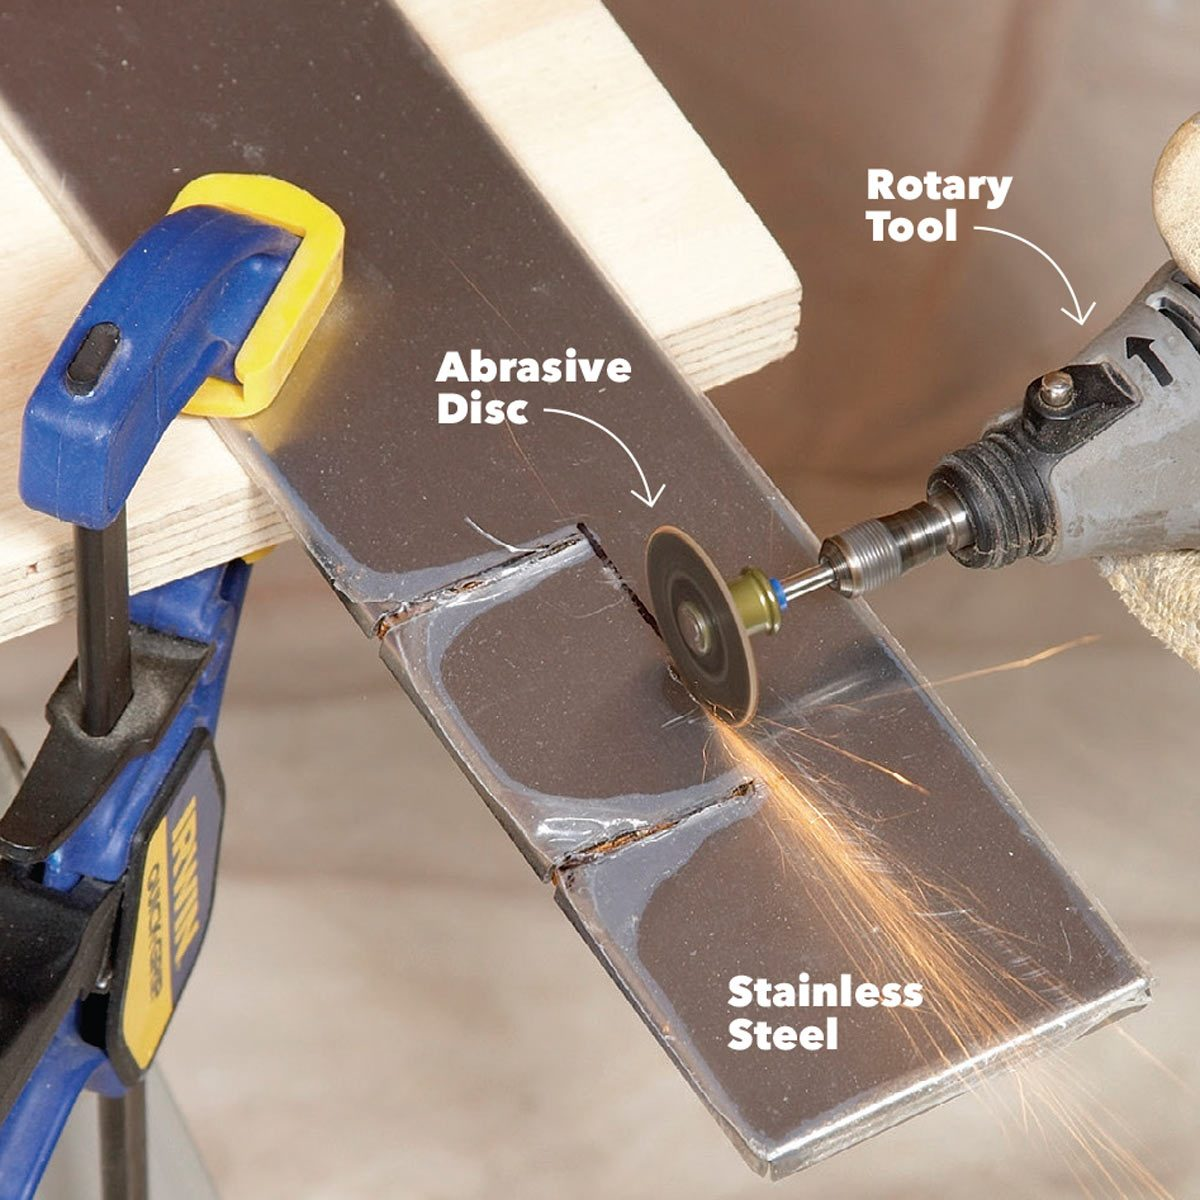 10 Easy Ways to Cut Metal Fast — The Family Handyman